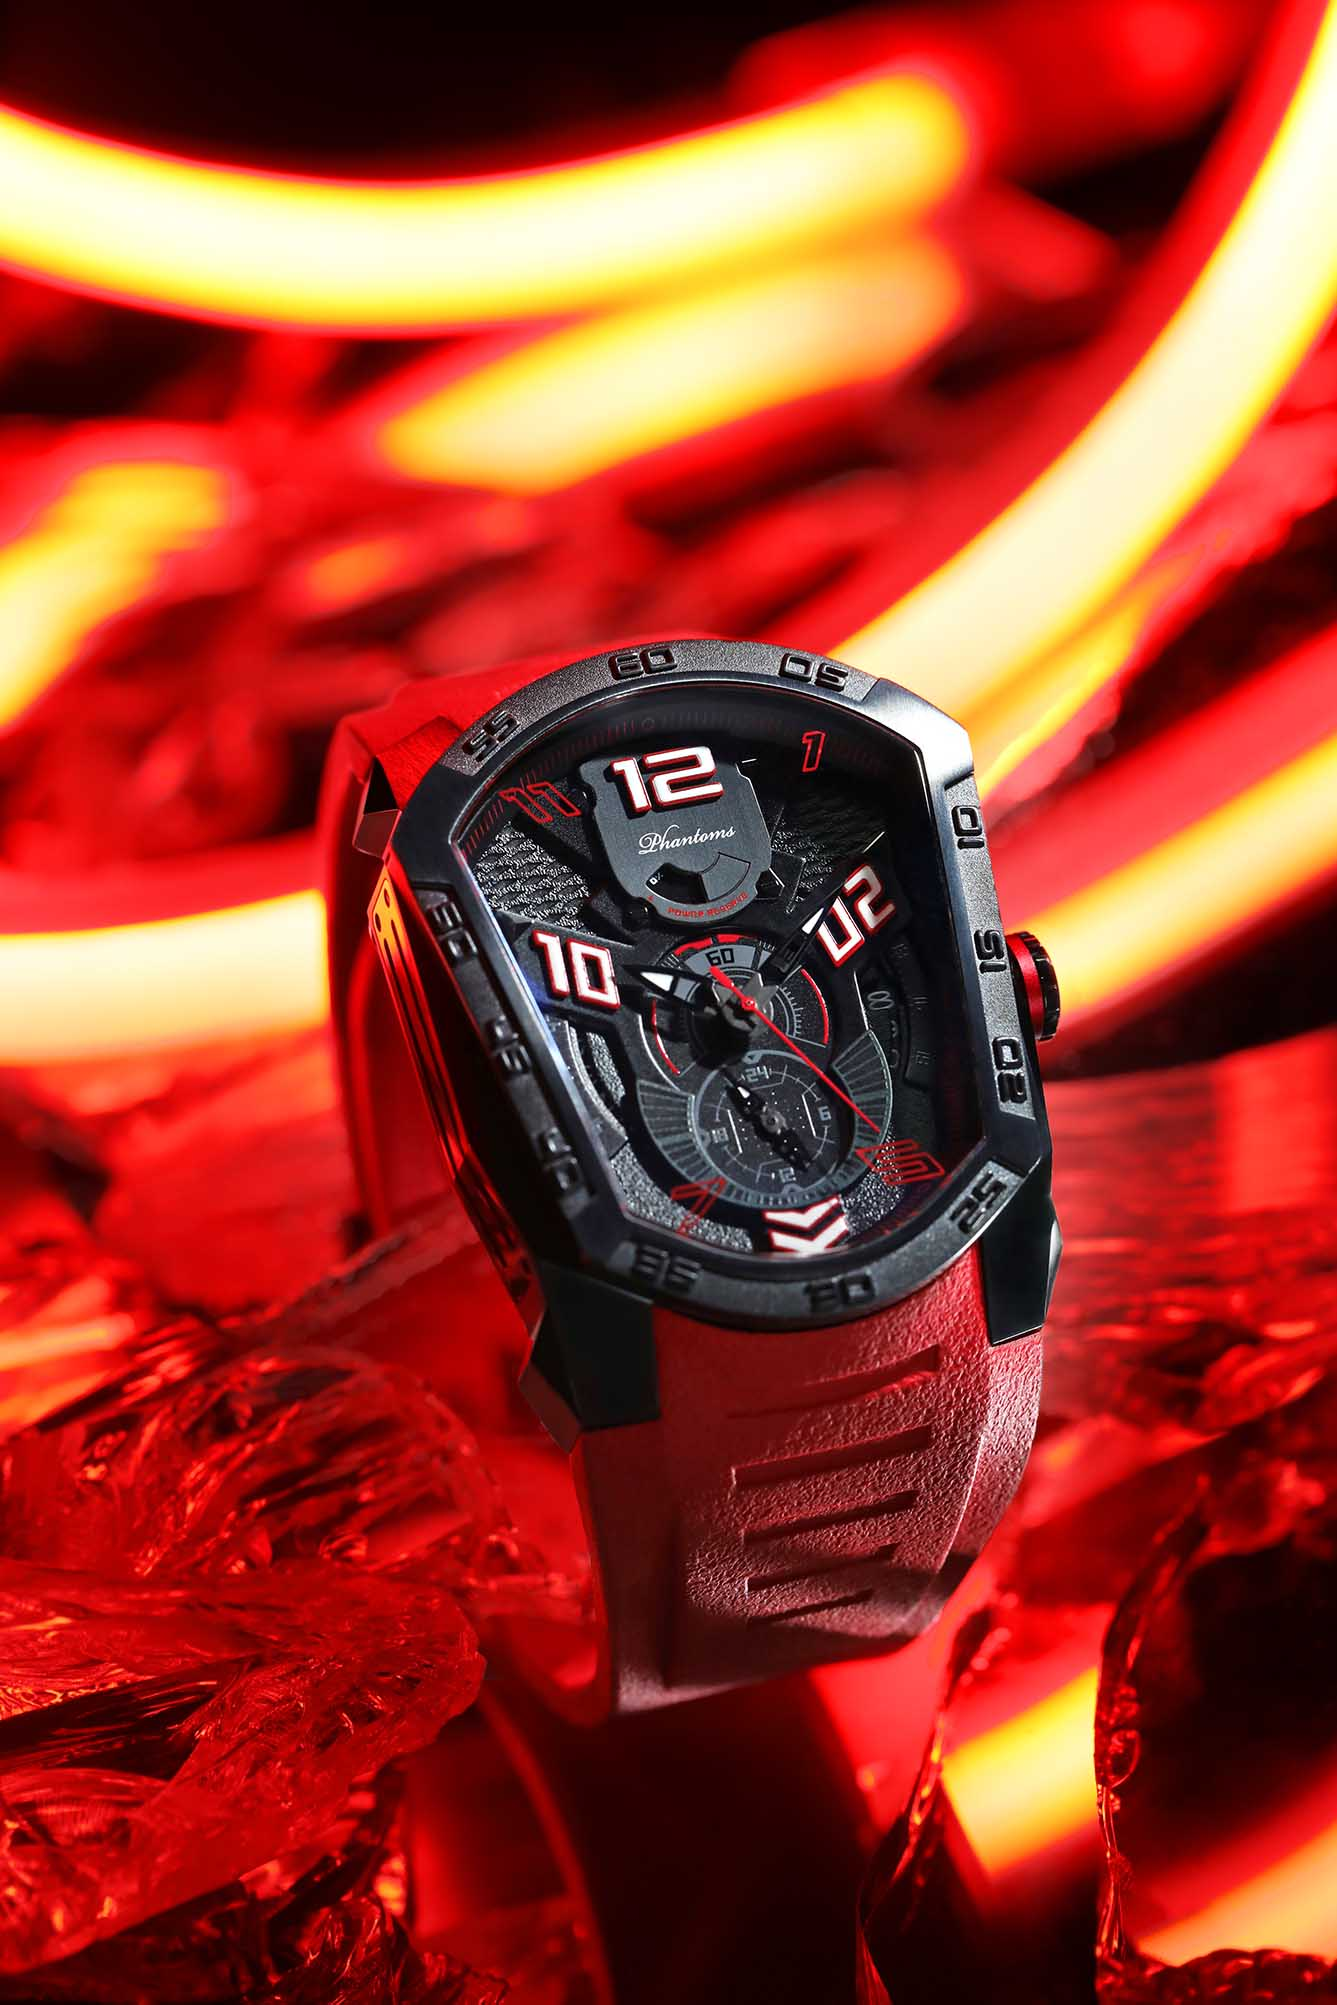 Flaming Laser Series Japanese Miyota Automatic Watch, Phantoms Watch Tourbillon, Sporty Mechanical Watch For Men